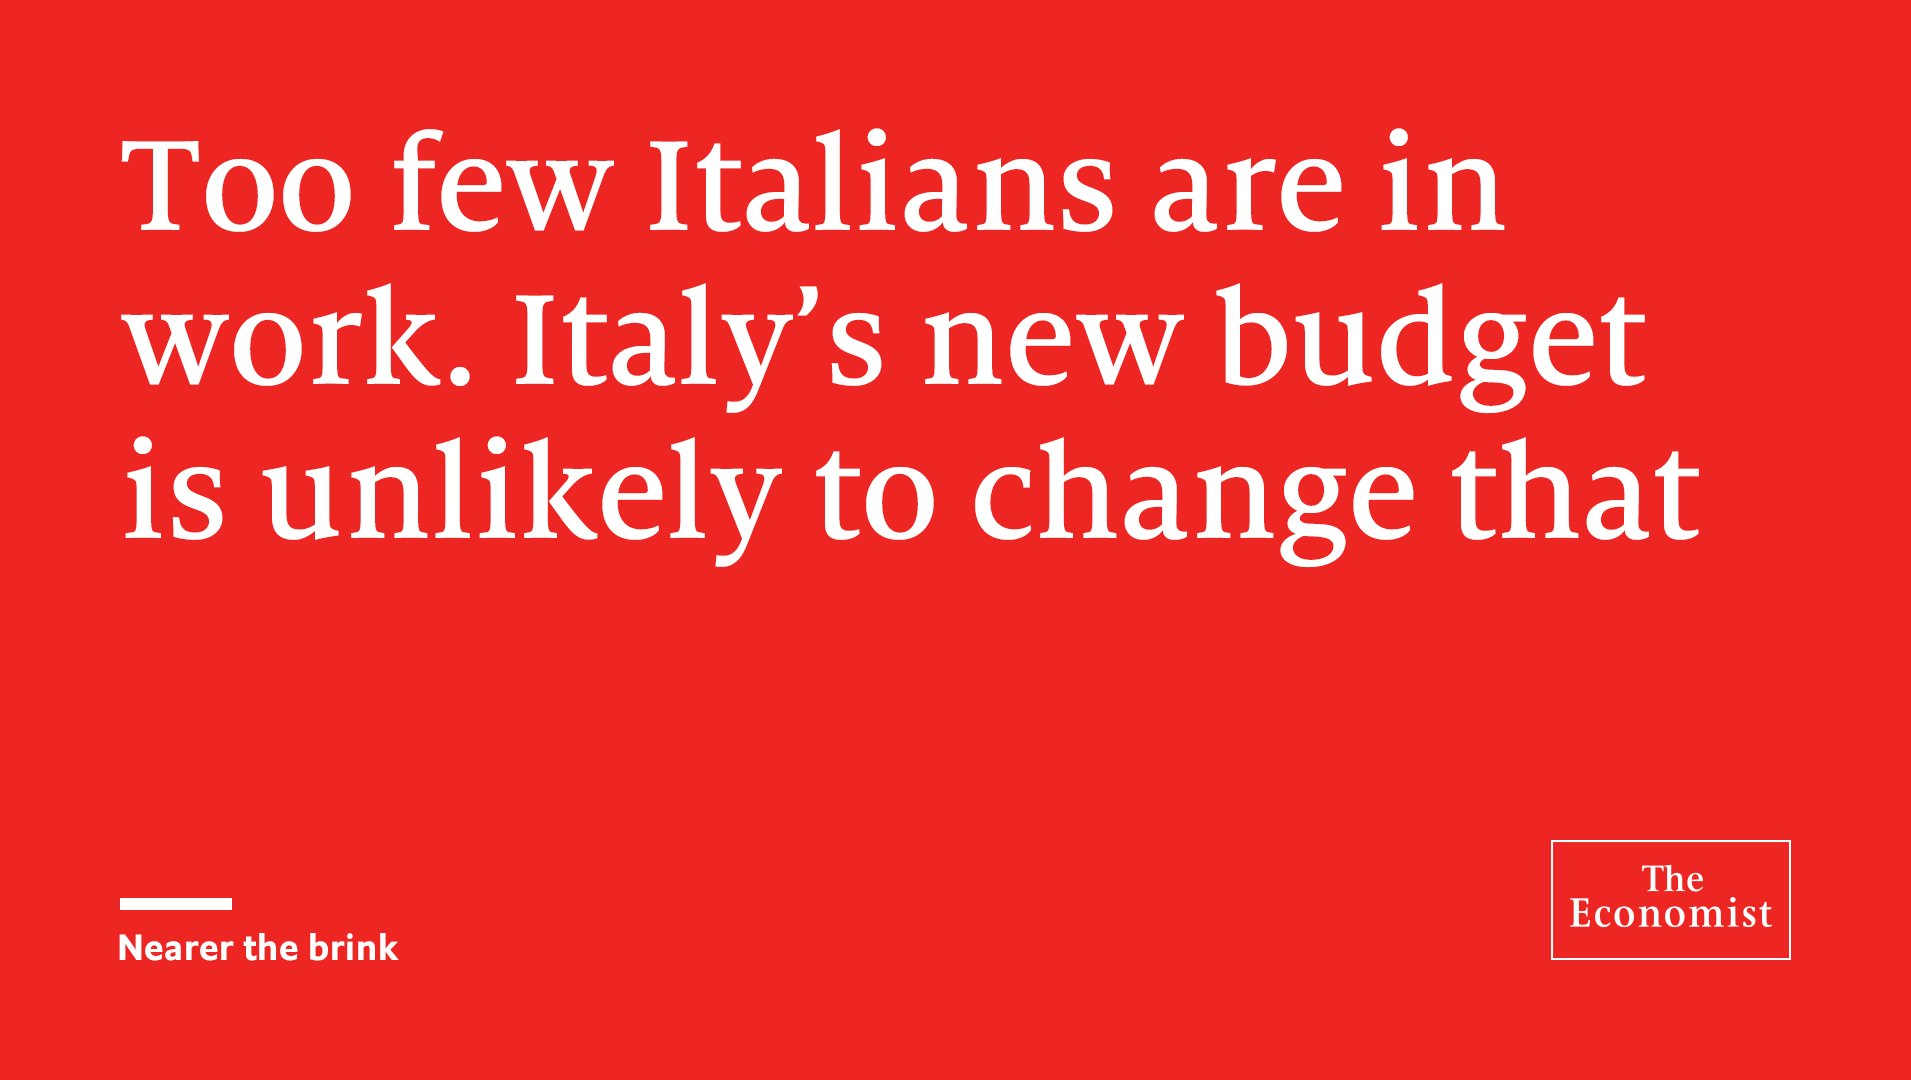 Italy's politics could push the country nearer default https://t.co/NvJw3ZTNYP https://t.co/0WjHuh0yVi